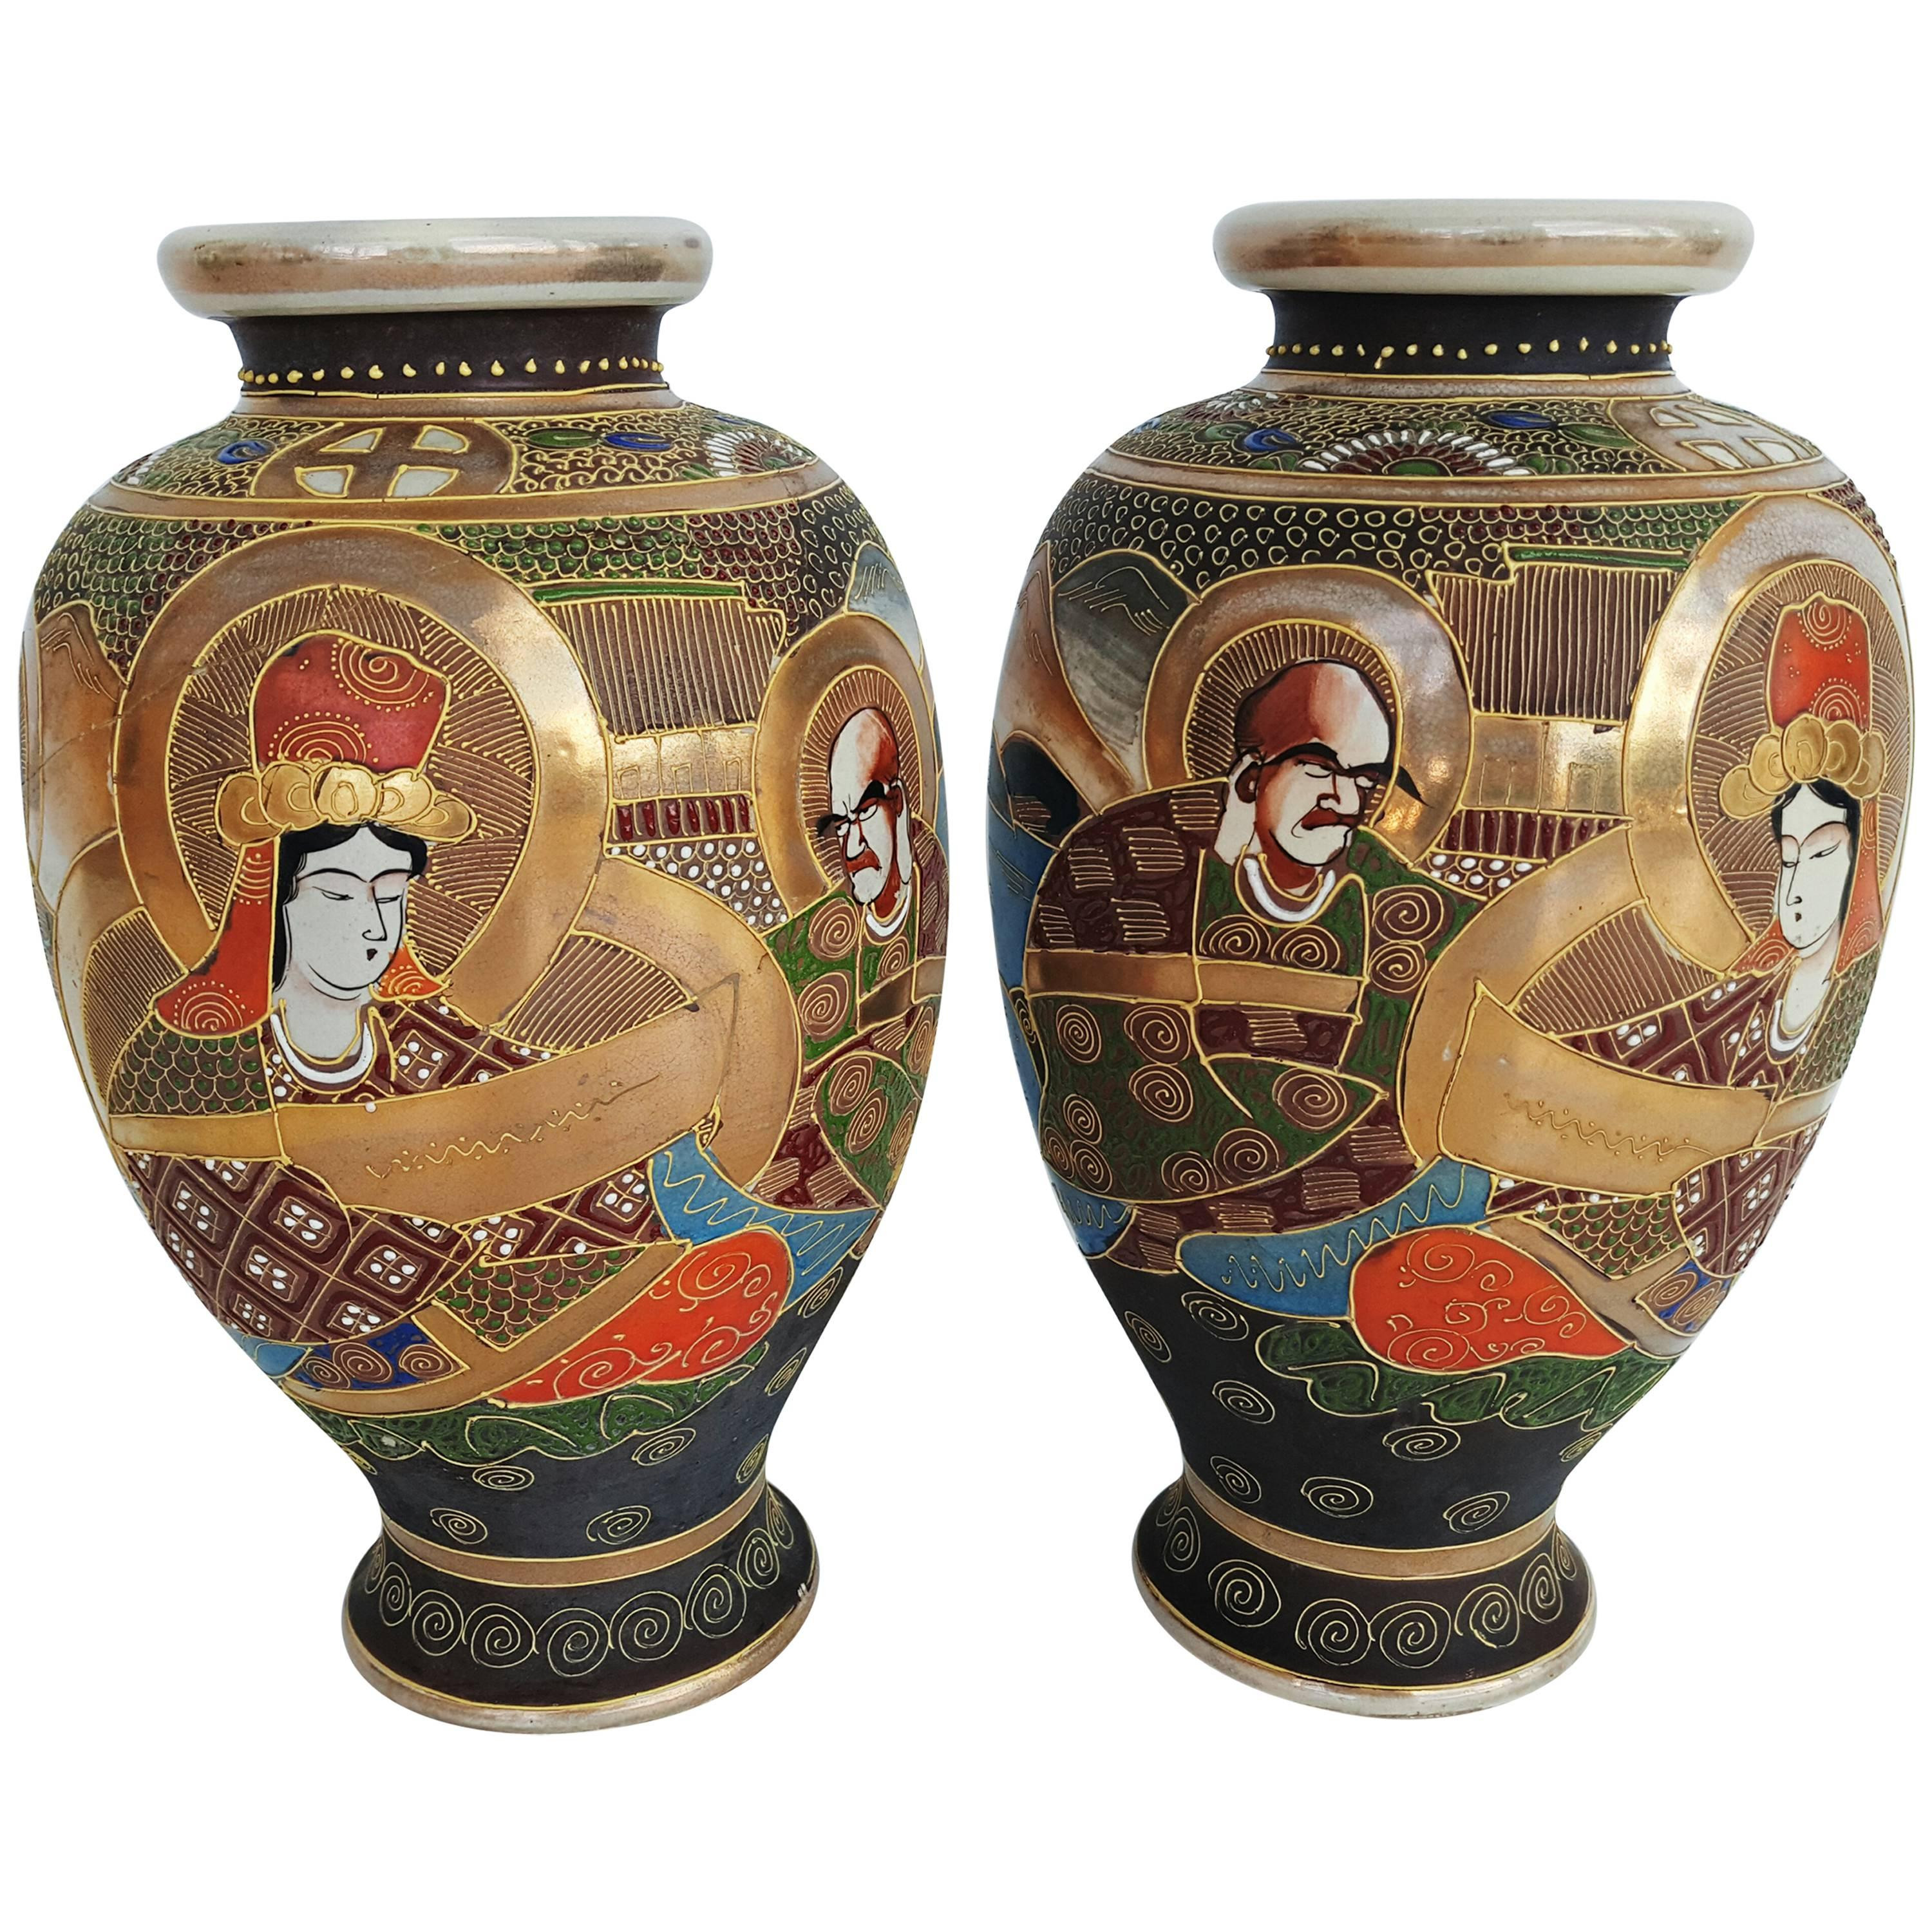 satsuma china vase of early 20th century pair of japanese satsuma vases in painted ceramic with early 20th century pair of japanese satsuma vases in painted ceramic for sale at 1stdibs